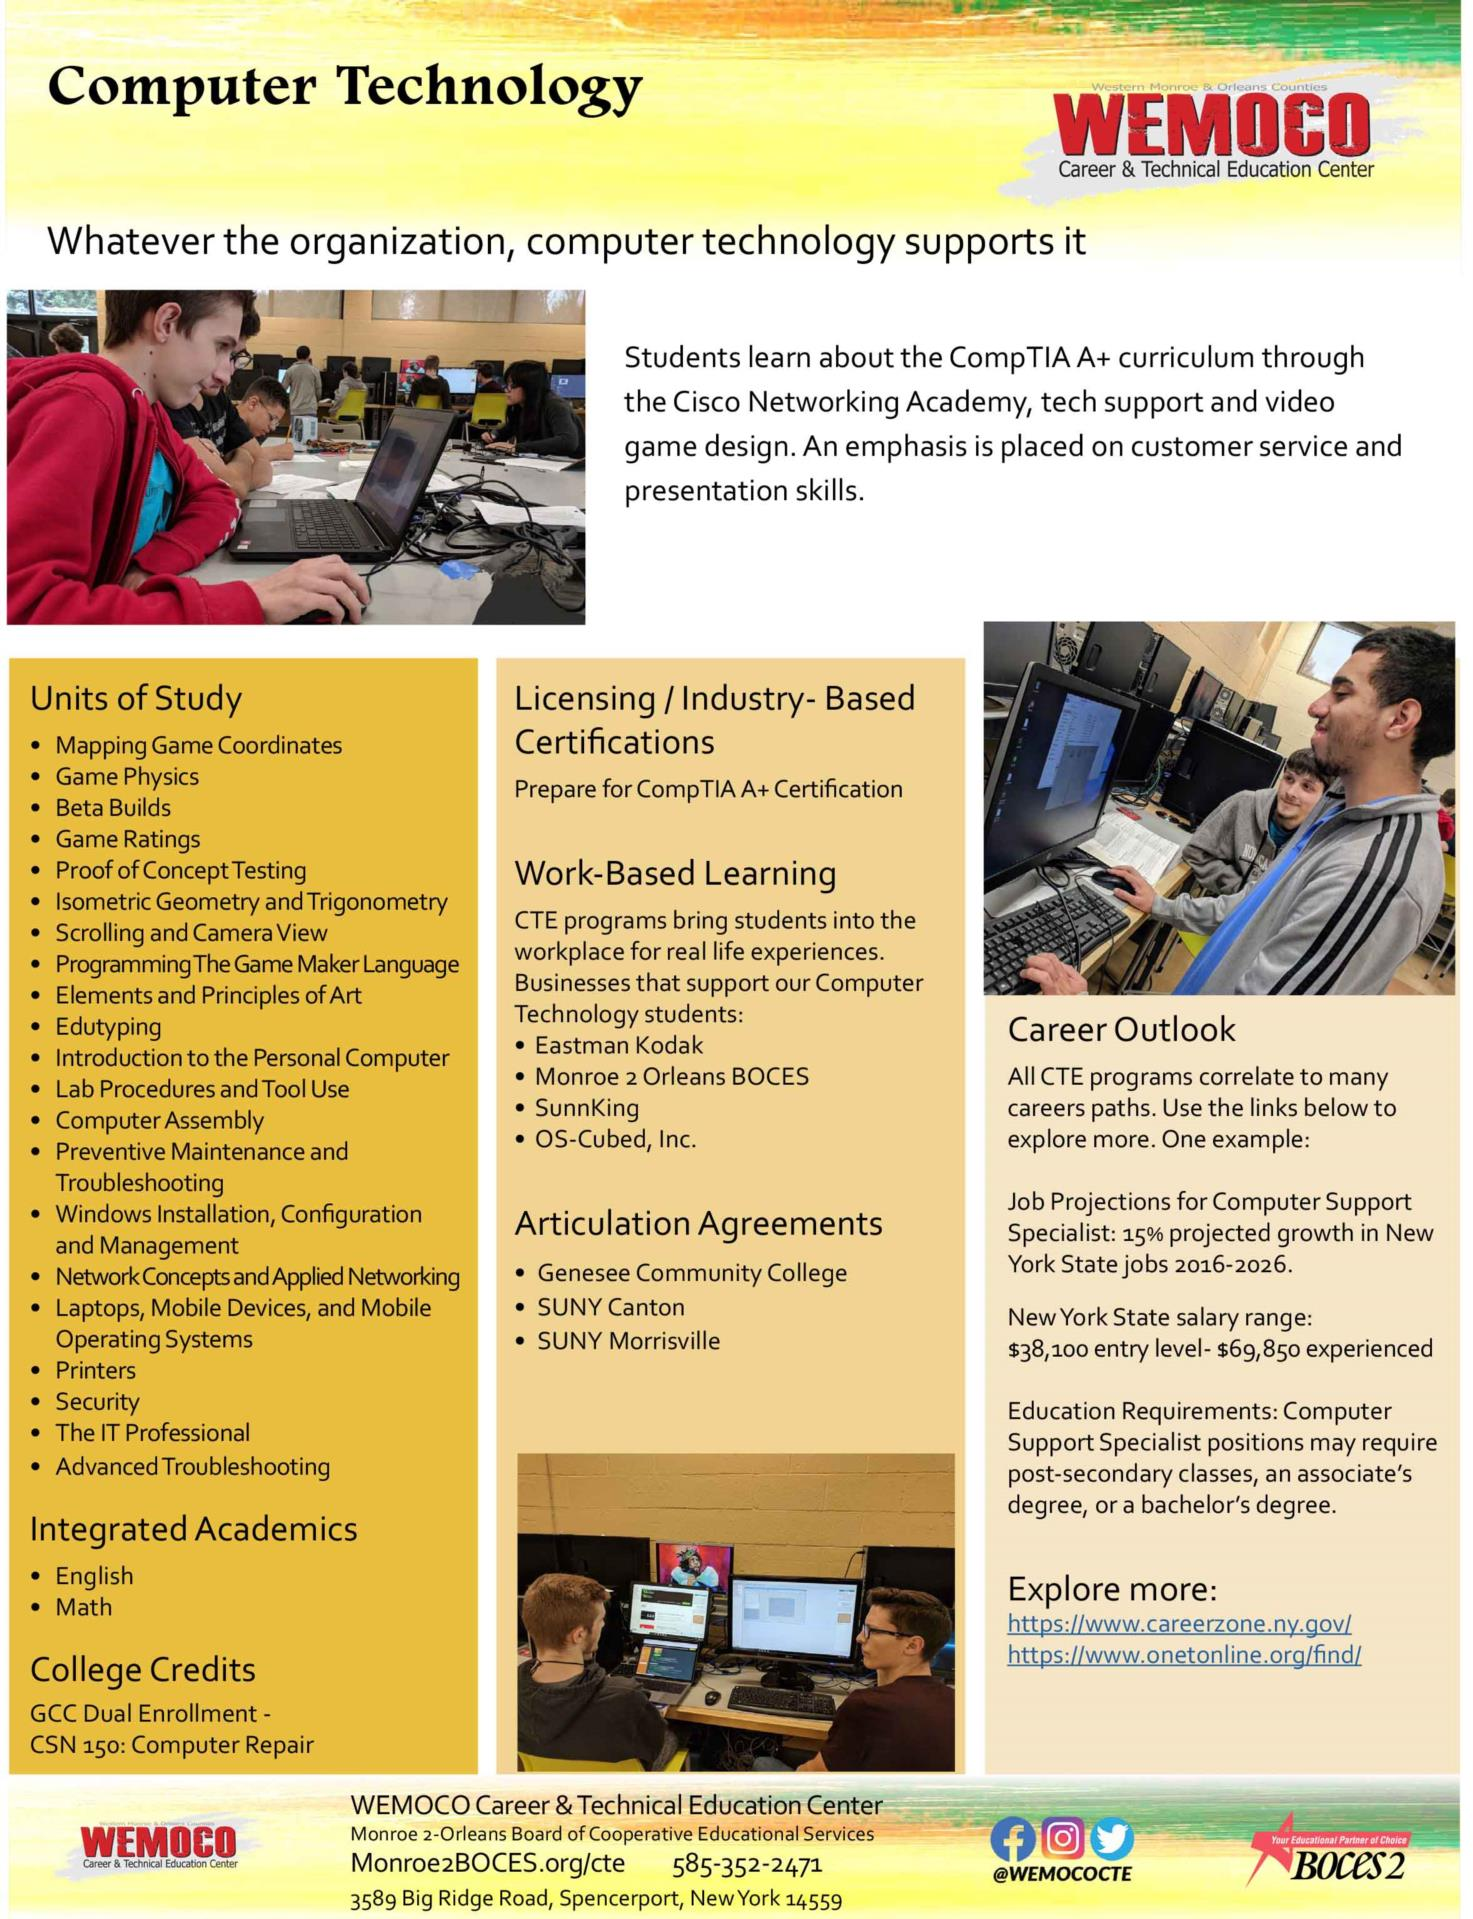 Download a PDF overview of the Computer Technology program